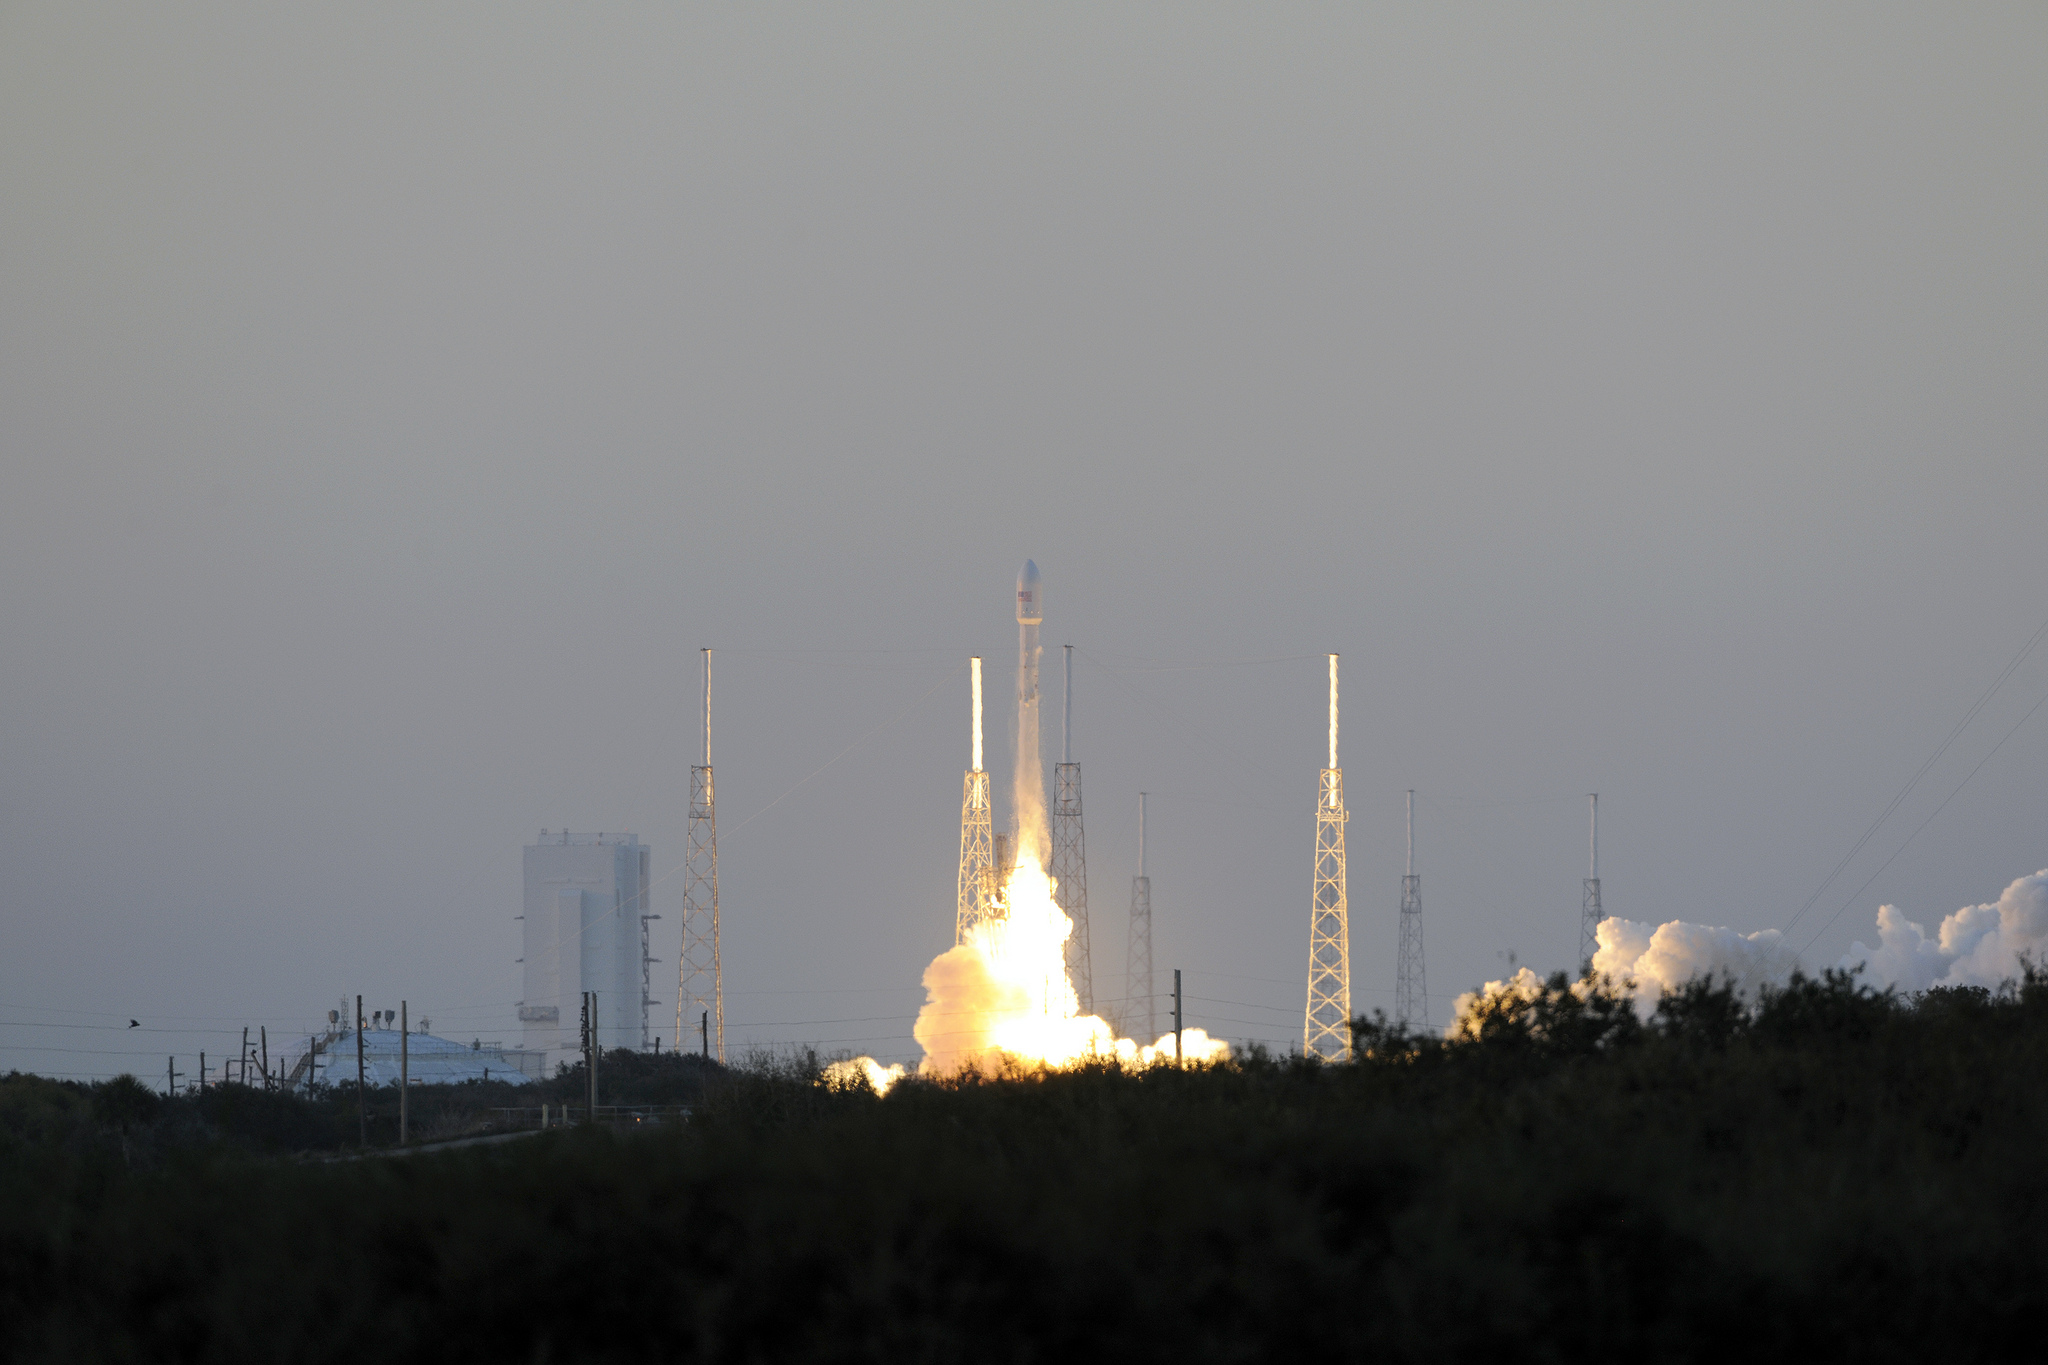 File photo of a Falcon 9 launch in February 2015. Credit: NASA/KSC